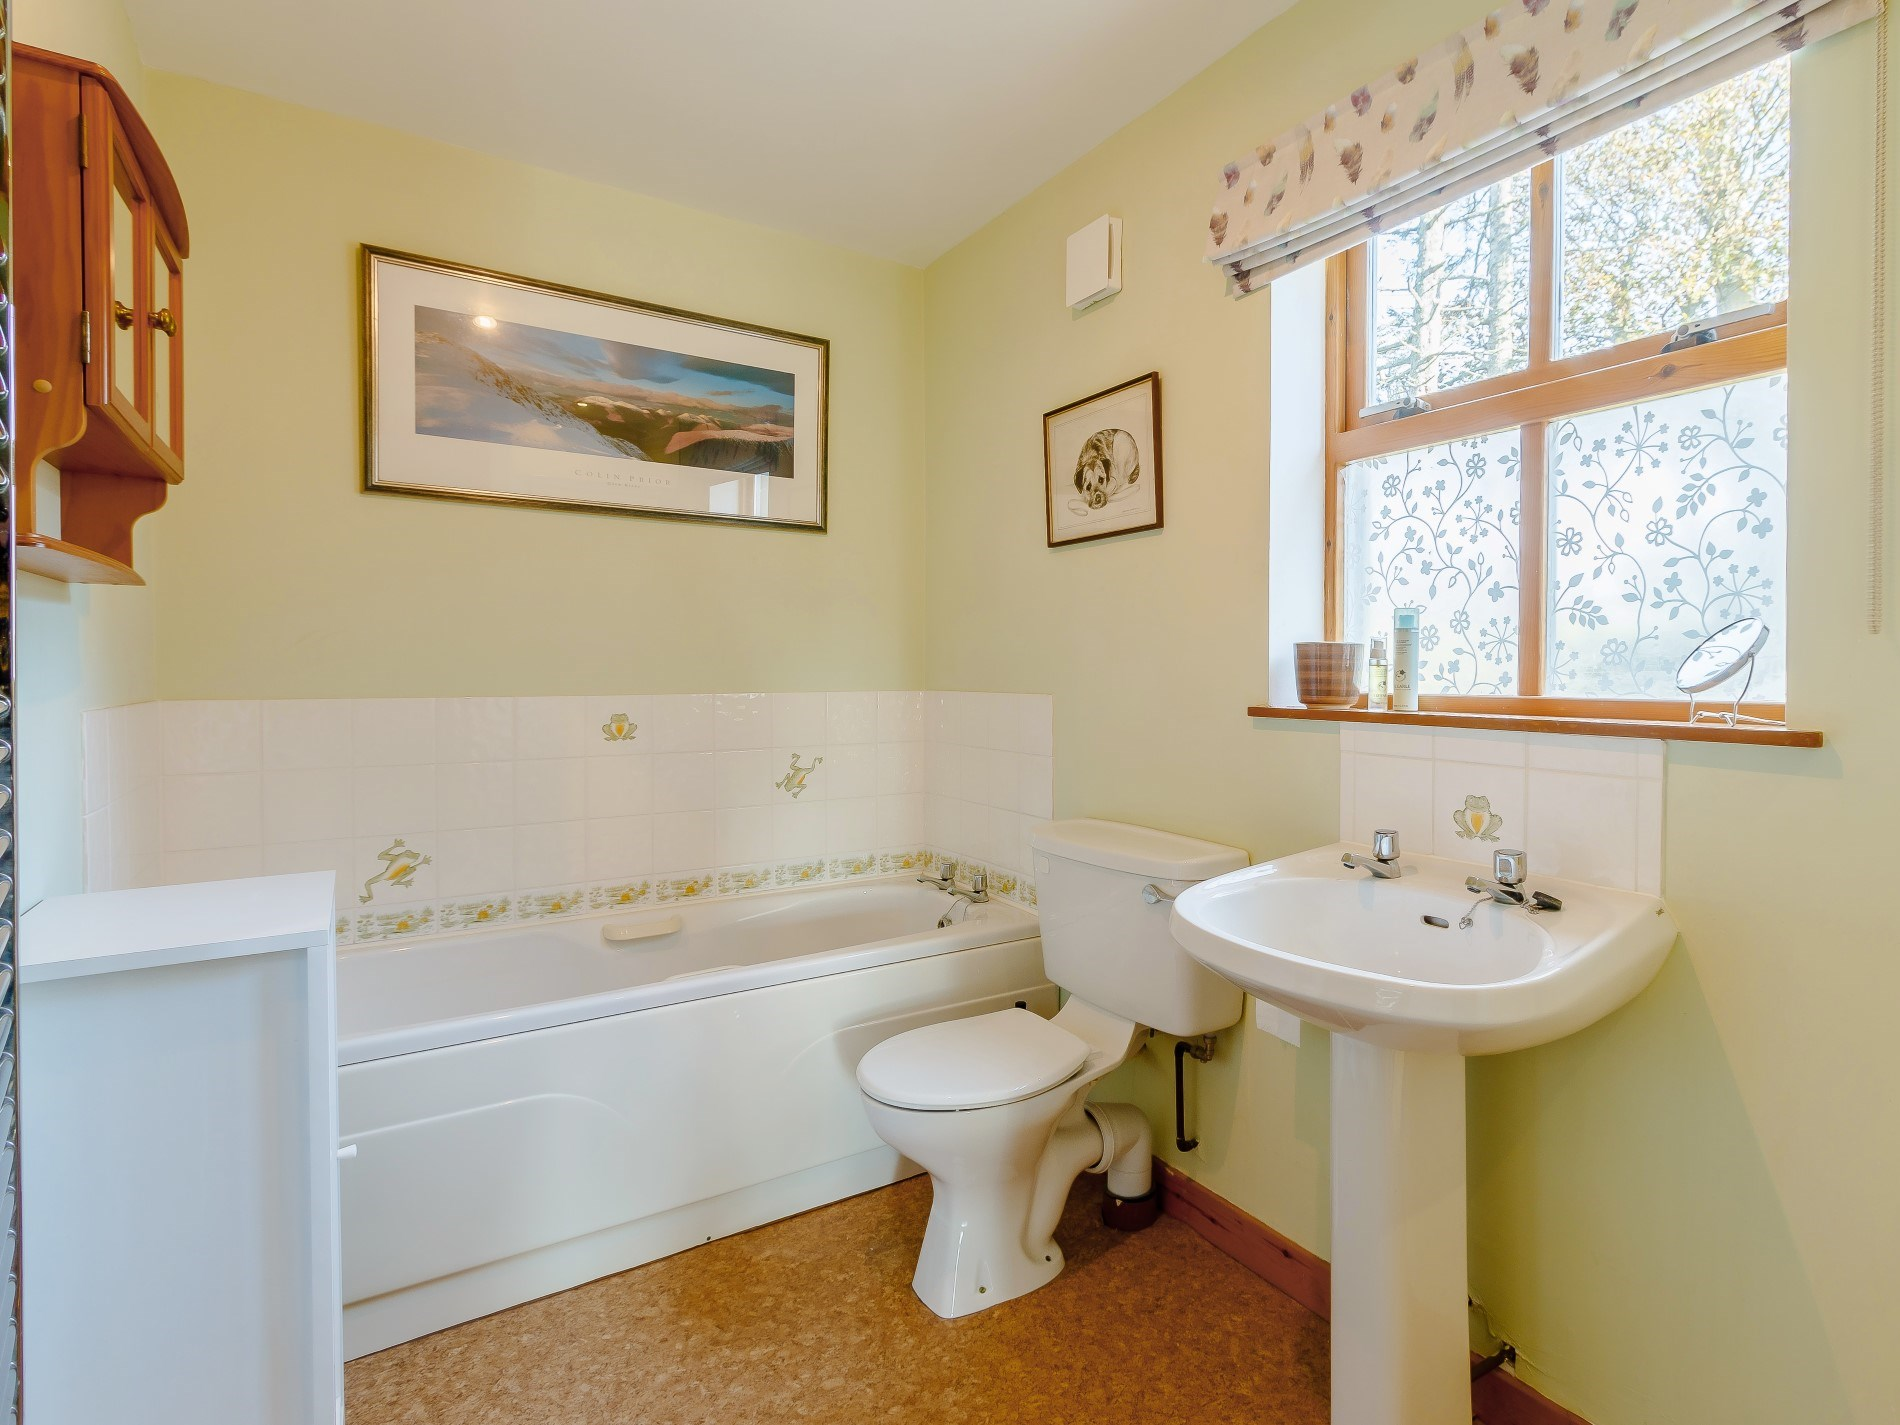 3 Bedroom Cottage in Aboyne, Moray, Aberdeenshire & The Coastal Trail